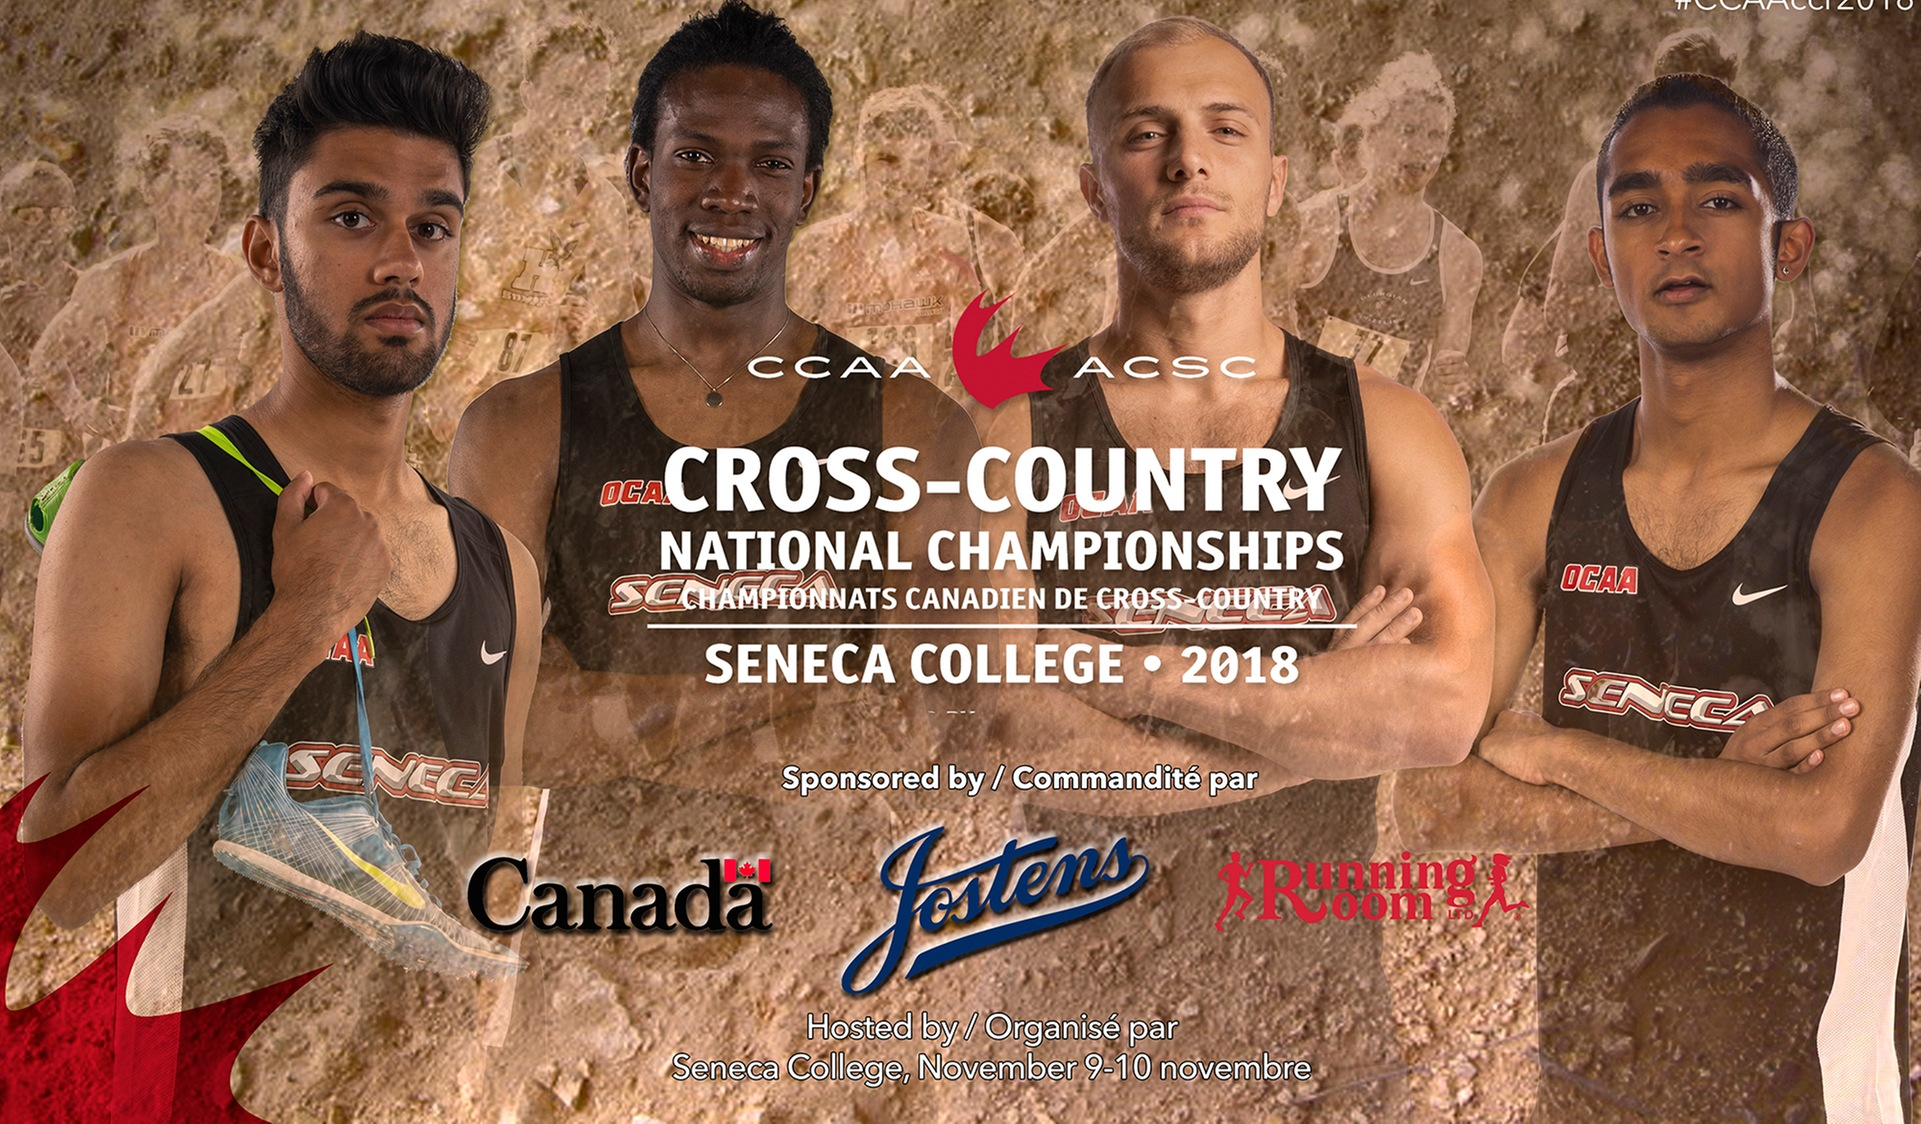 HAWKS MEN & WOMEN VIE FOR CCAA NATIONAL CROSS COUNTRY SUCCESS